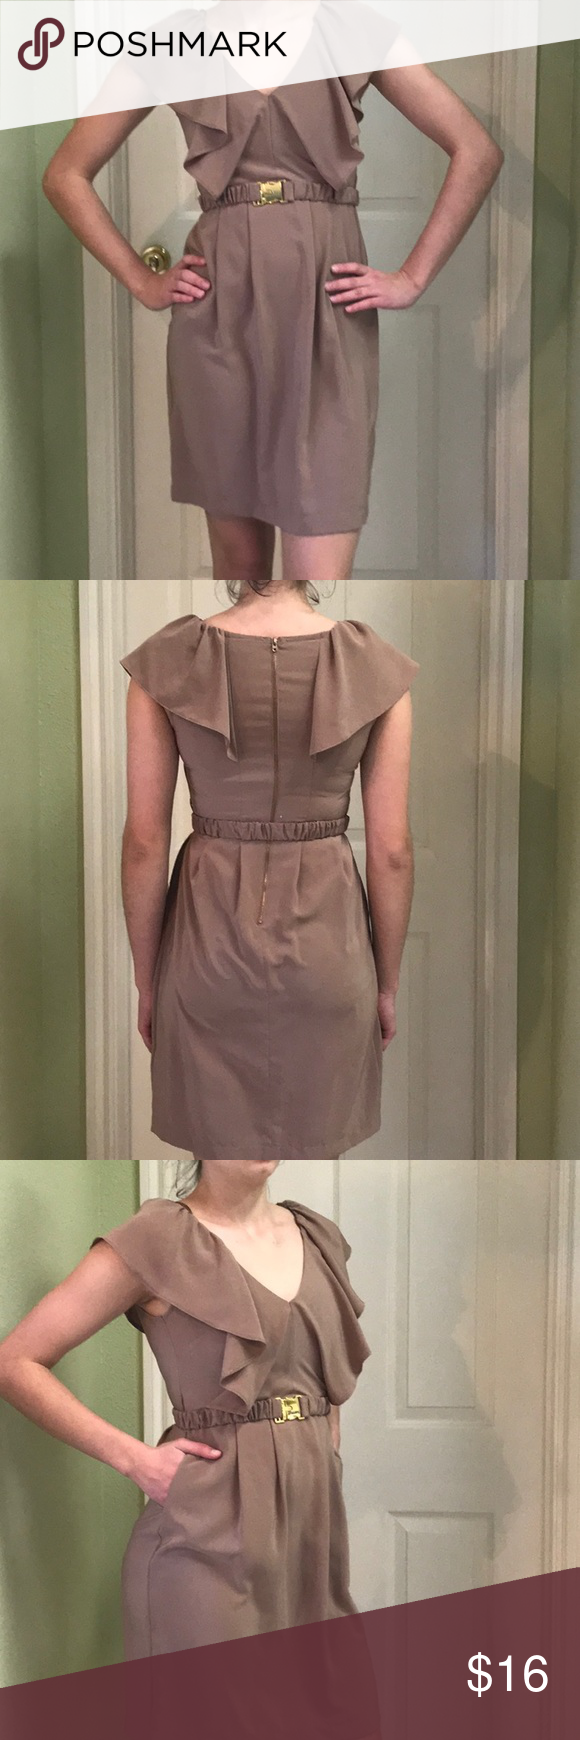 Tan Mini Summer Dress Good Used Condition Sized As Size 4 But Runs On A Small Side Would Fit Better Size 2 Mini Dresses Summer Summer Dresses Clothes Design [ 1740 x 580 Pixel ]